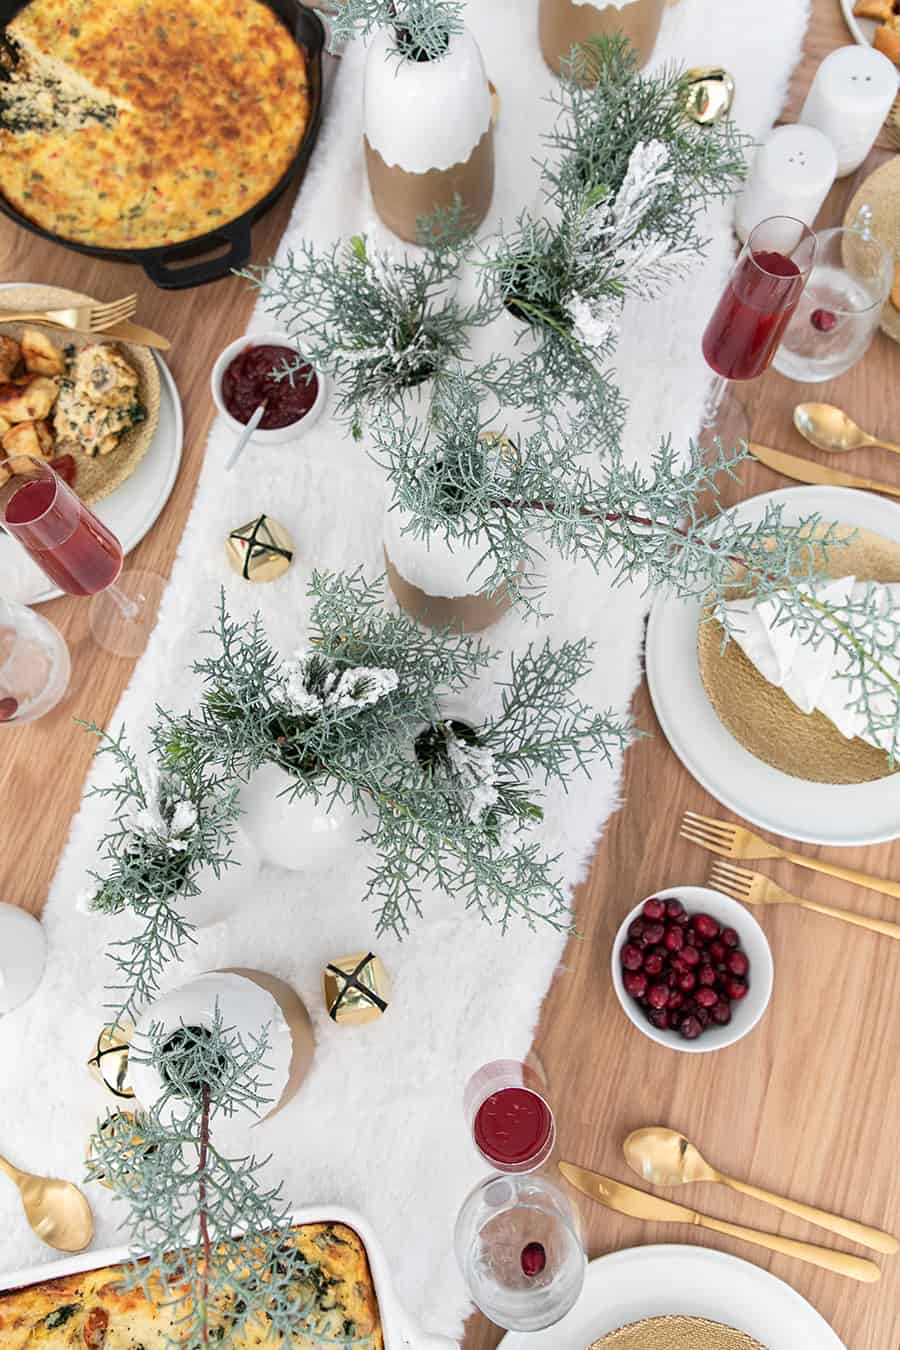 Christmas brunch with greens, gold flatware and white napkins.